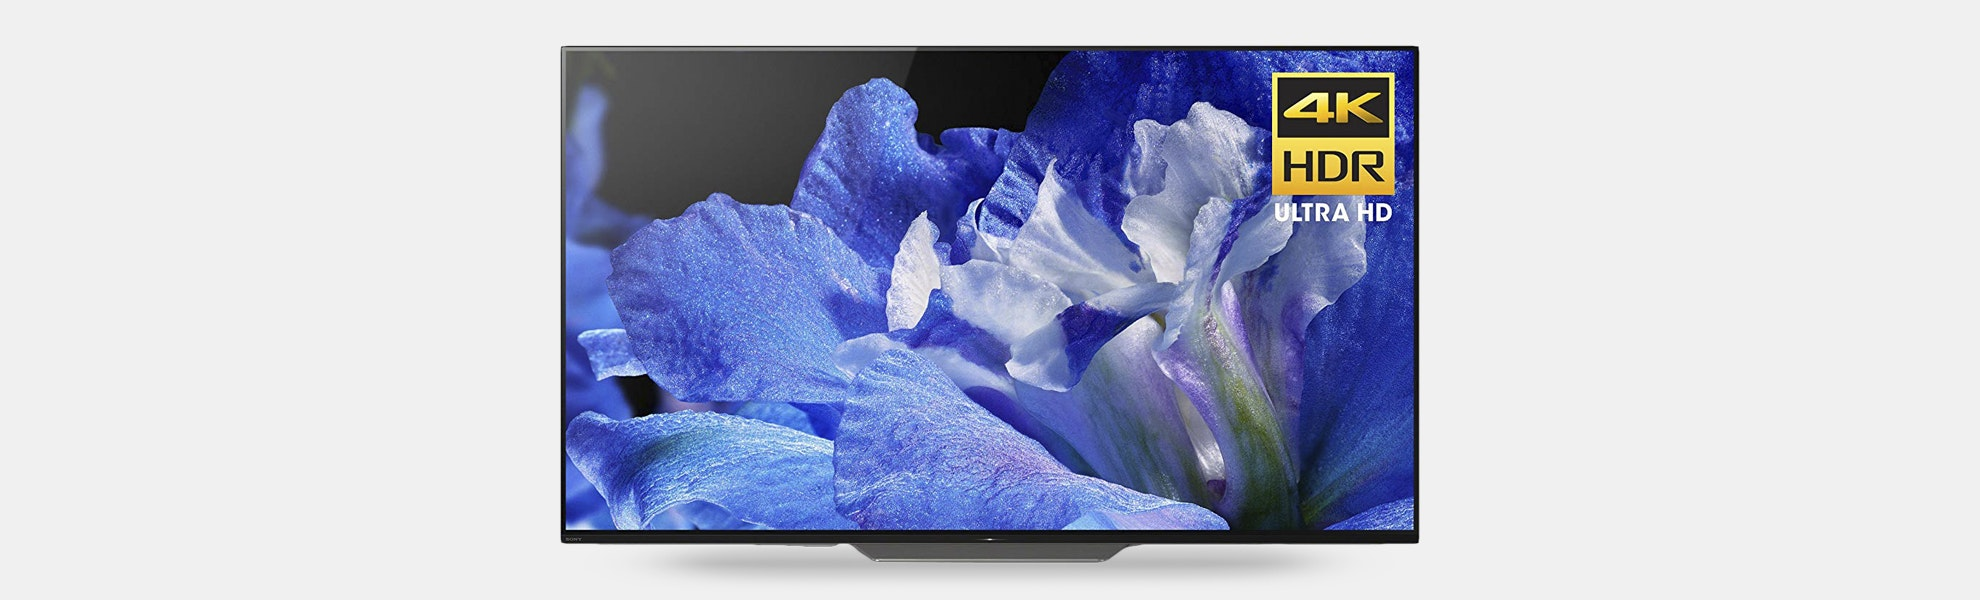 "Sony 55/65"" 4K UHD A8F Smart Bravia OLED TV (2018)"